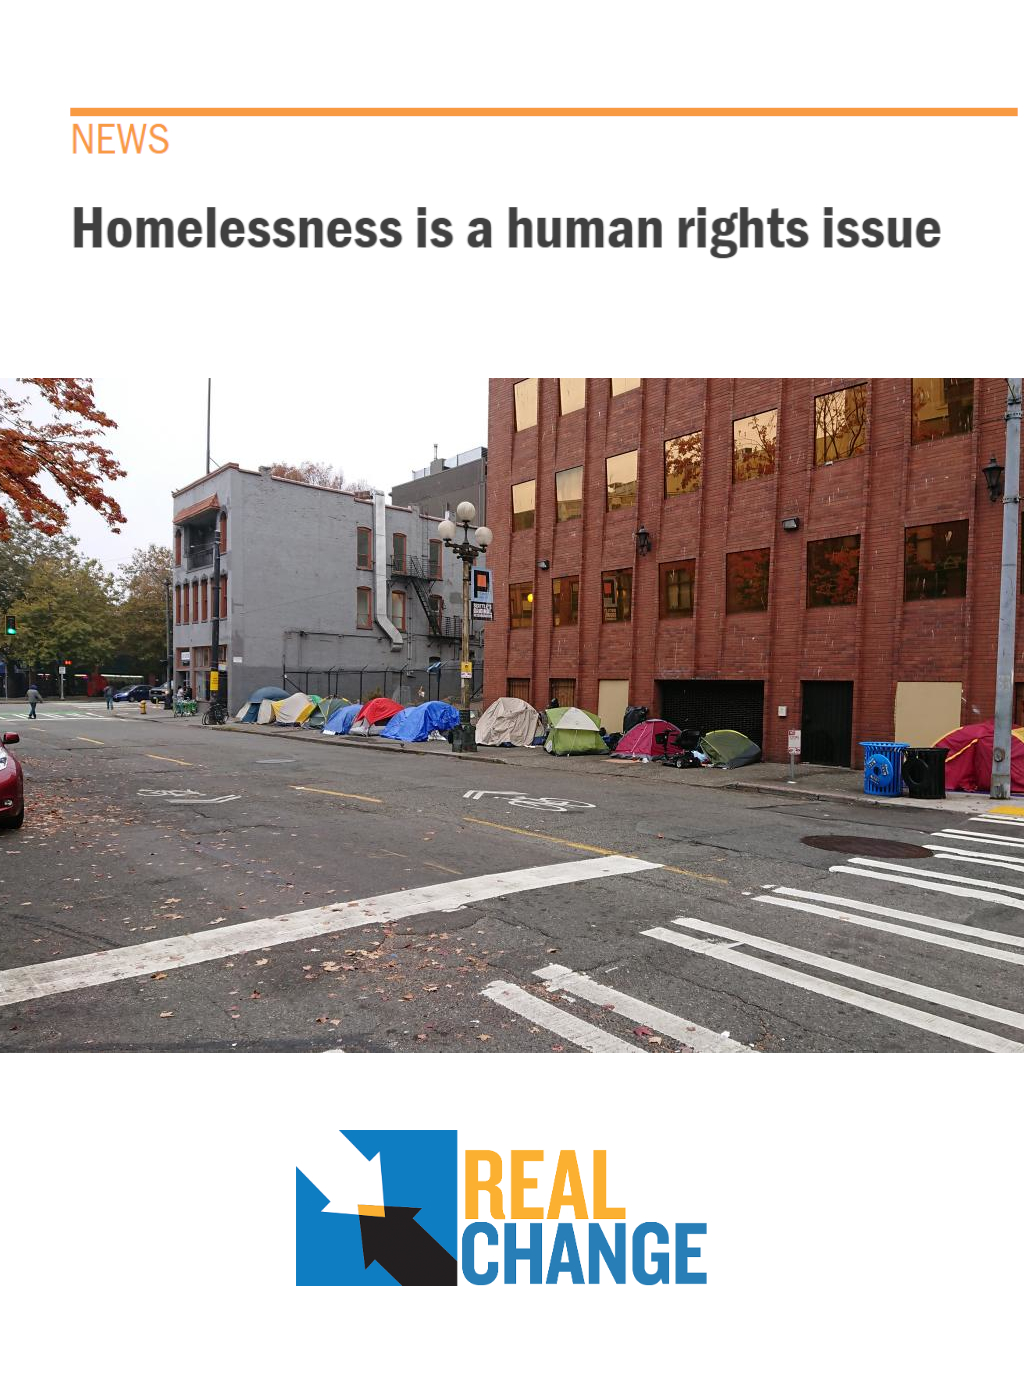 Homeslessness is a Human Rights Issue